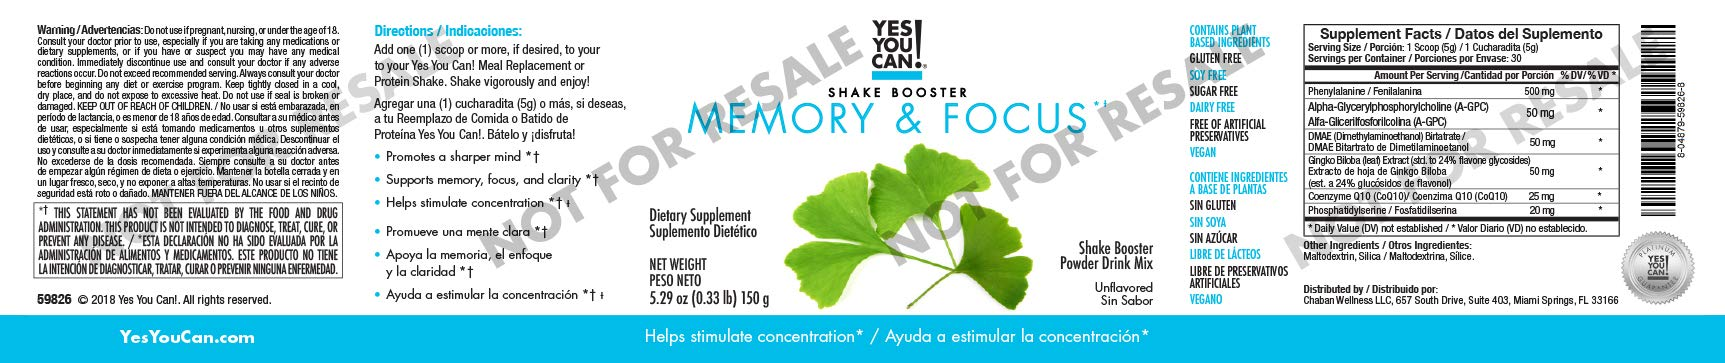 Yes You Can! Shake Boosters - Memory and Focus